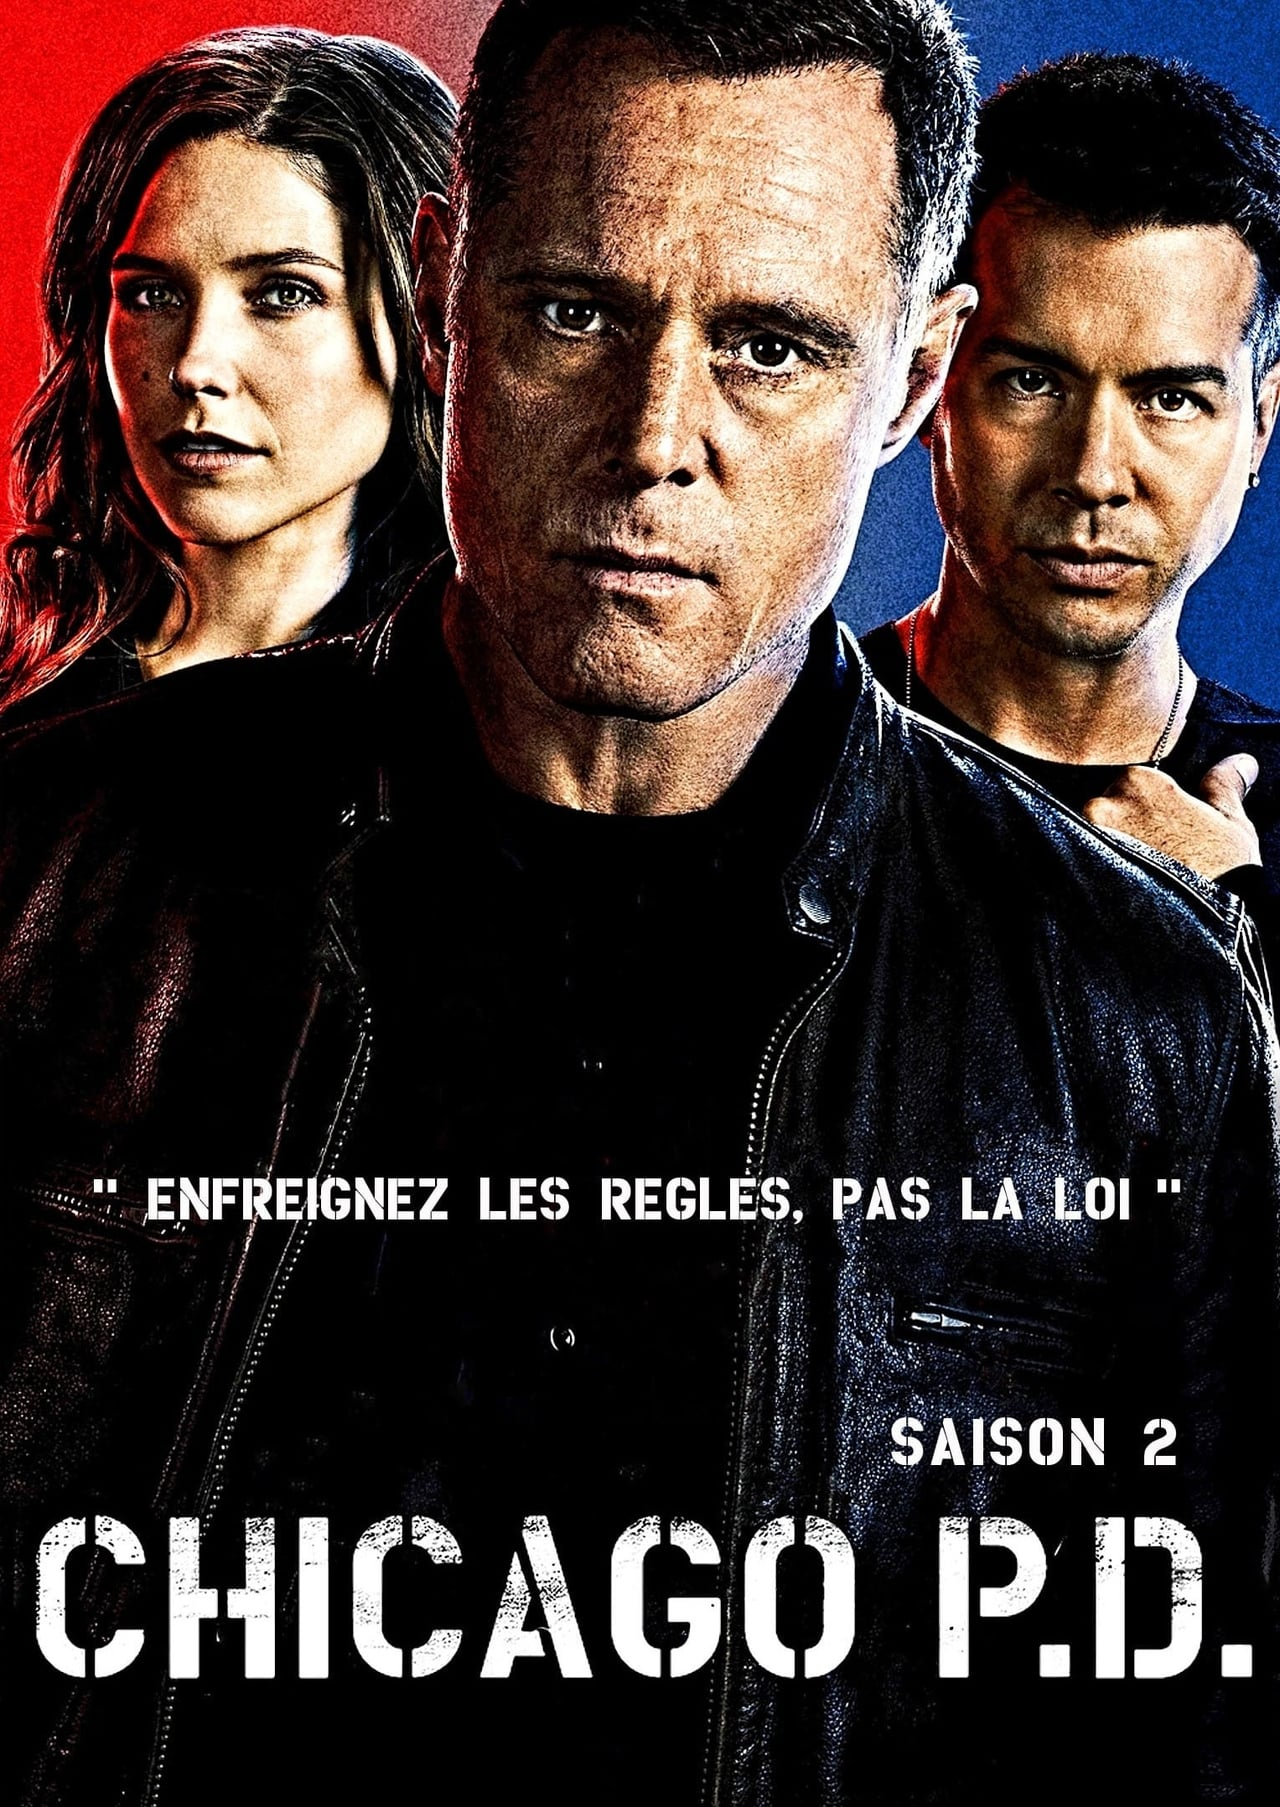 Putlocker Chicago P.d. Season 2 (2014)